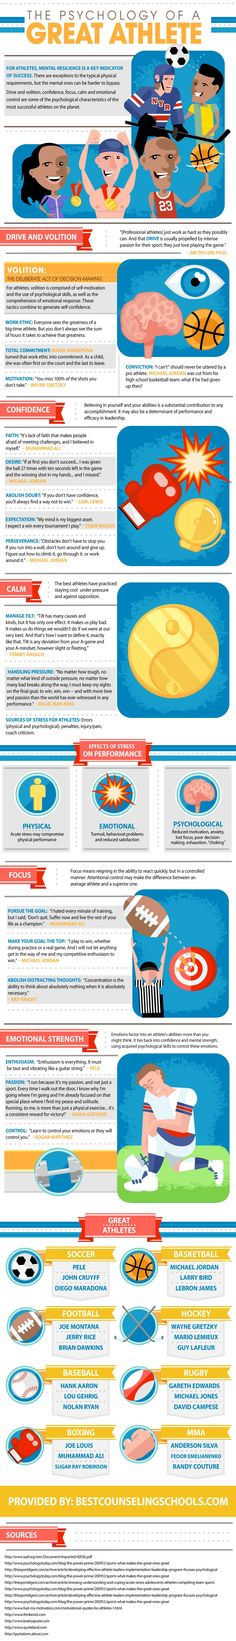 Blonyx - The Psychology of Being a Top Athlete (Infographic)